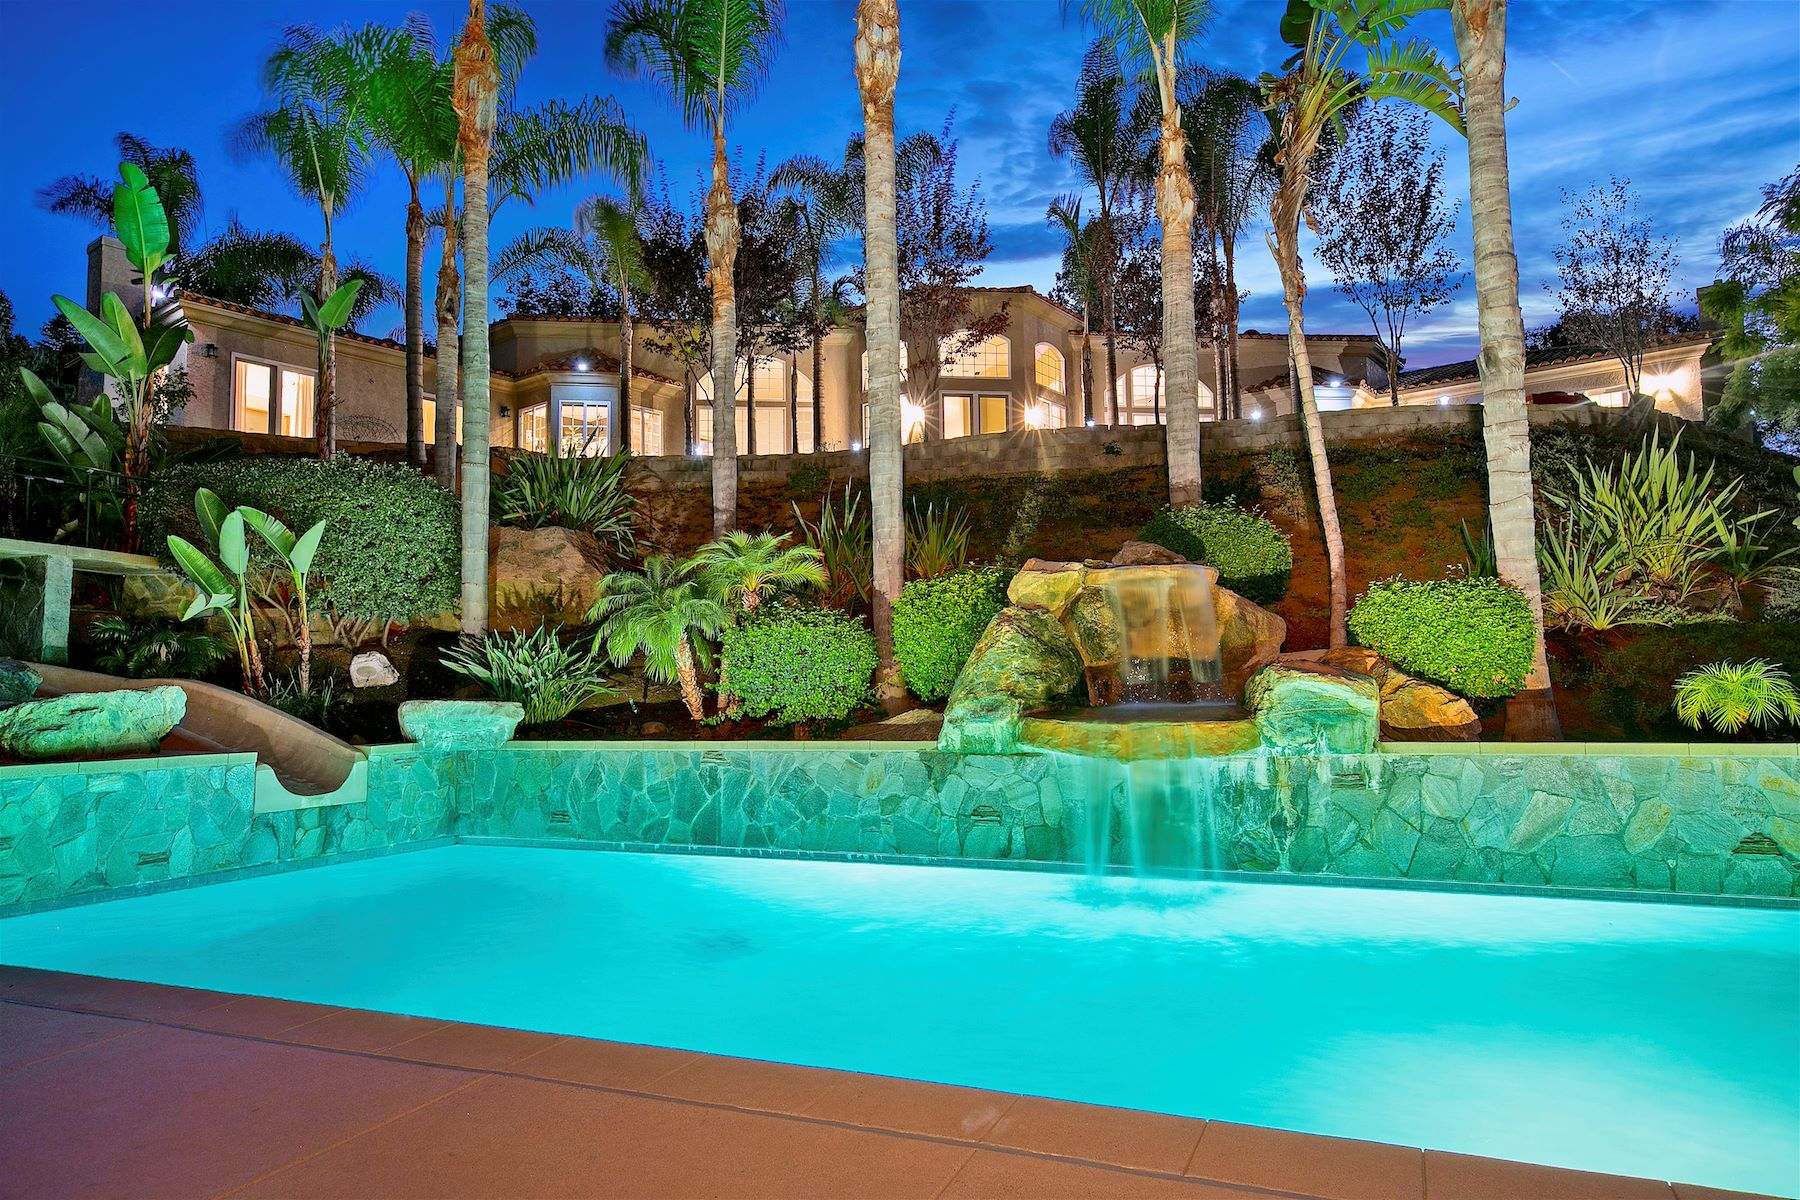 The legendary Bill Goldberg recently listed his San Diego home